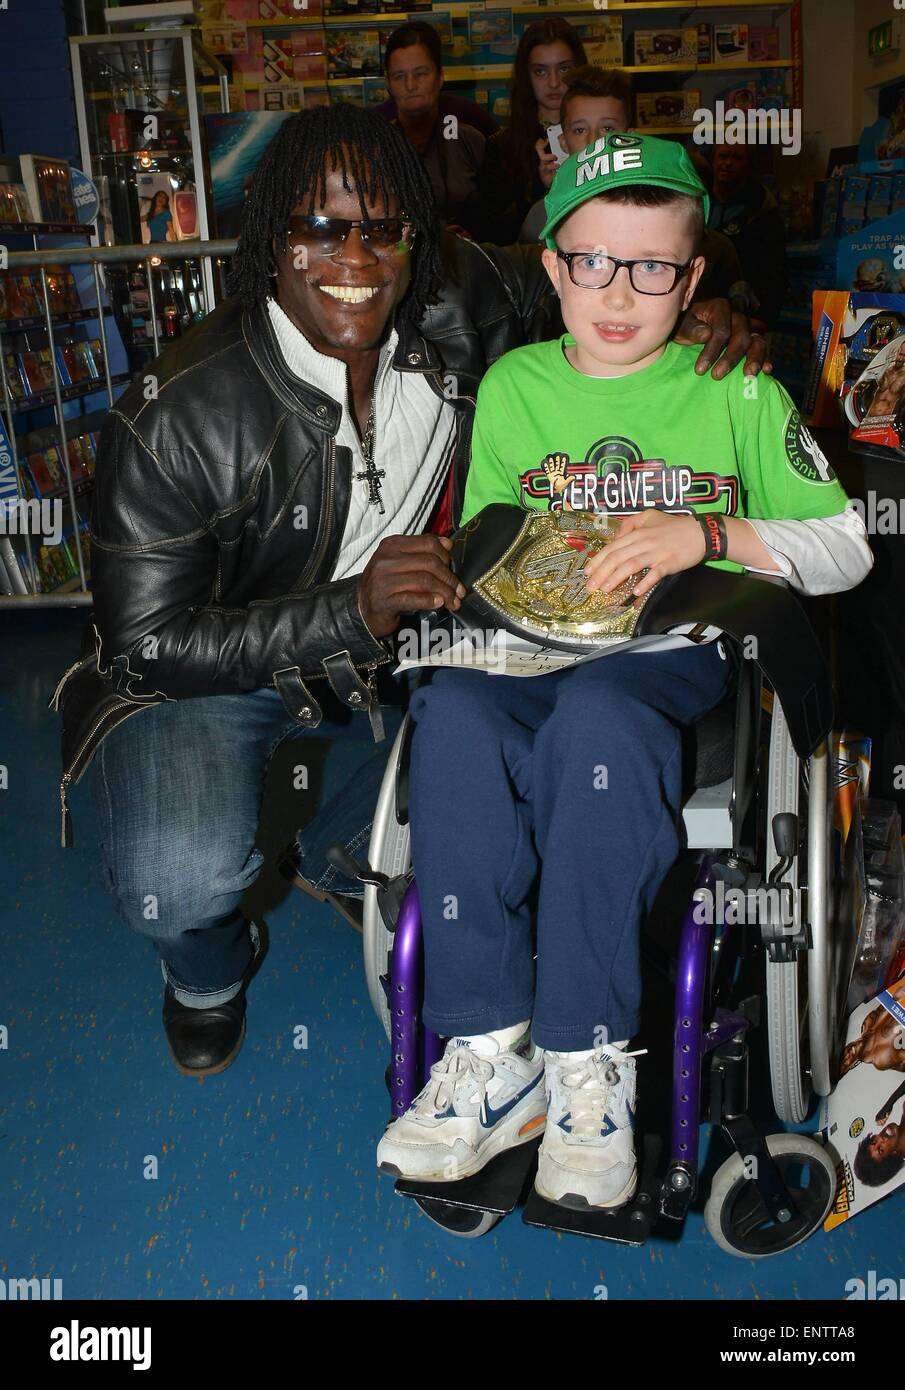 Outstanding Smyths Stock Photos  Smyths Stock Images  Alamy With Exquisite Wwe Superstar Rtruth At A Signing In Smyths Toystore In Jervis Street  Ahead Of With Cute Covent Garden To Charing Cross Also Winter Gardens Ilkley Wedding In Addition Garden Furniture At Tesco And Garden Moles Removal As Well As Cheap Garden Trellis Additionally Garden Landscaping Designs From Alamycom With   Exquisite Smyths Stock Photos  Smyths Stock Images  Alamy With Cute Wwe Superstar Rtruth At A Signing In Smyths Toystore In Jervis Street  Ahead Of And Outstanding Covent Garden To Charing Cross Also Winter Gardens Ilkley Wedding In Addition Garden Furniture At Tesco From Alamycom